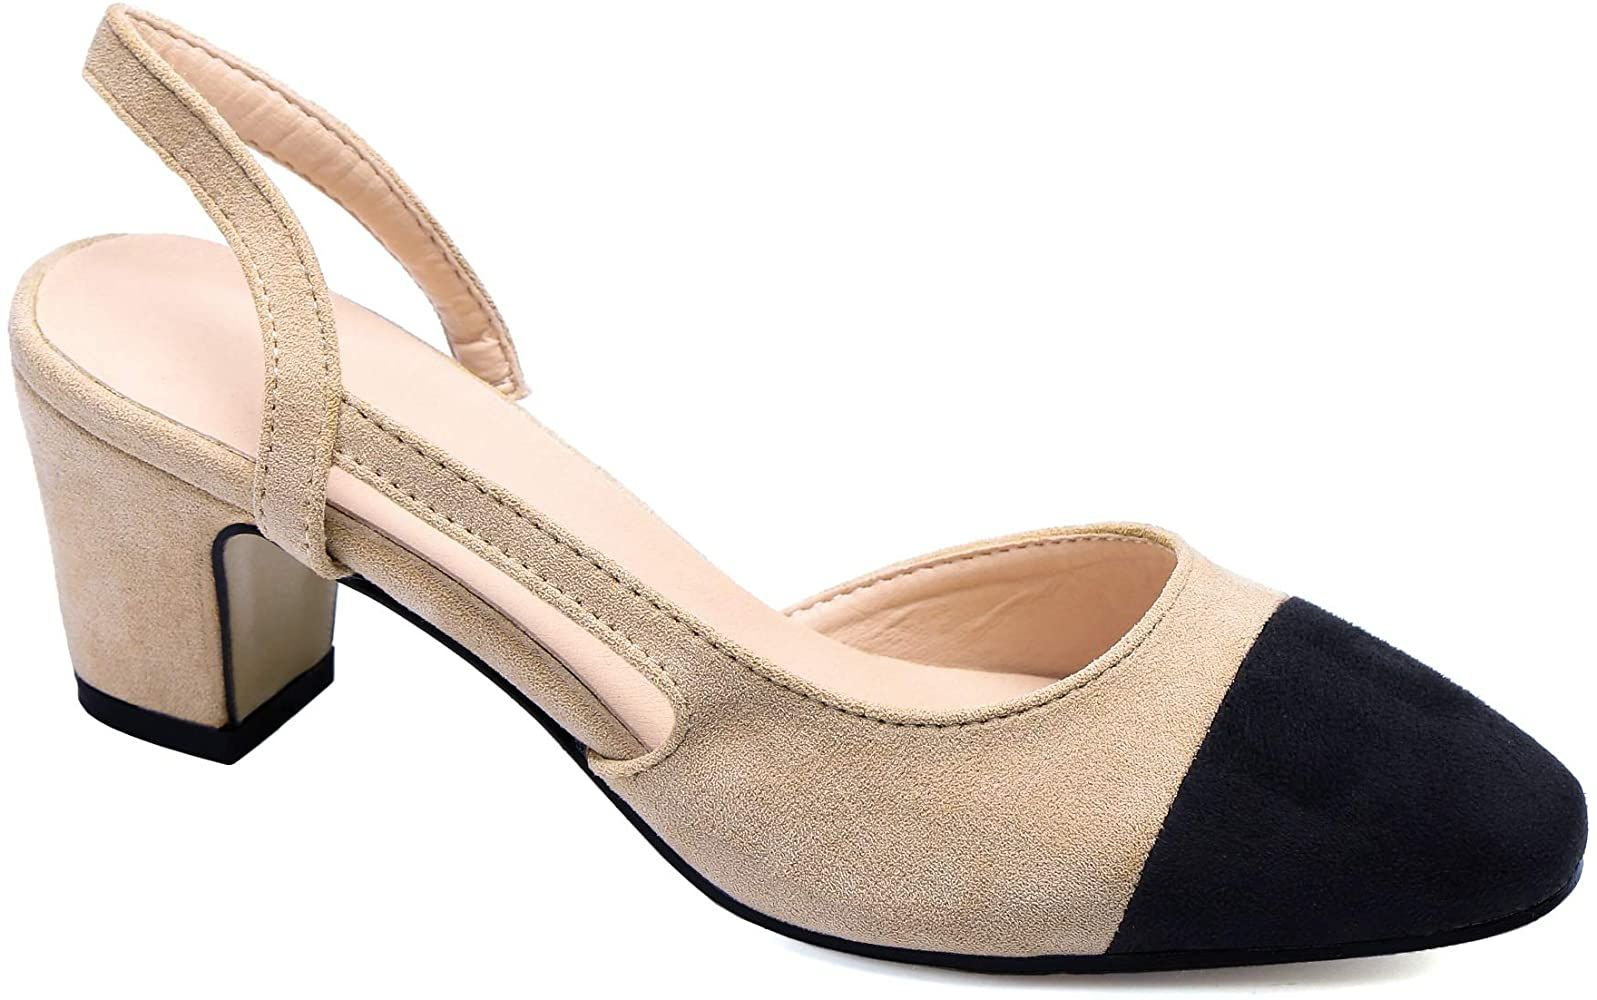 Greatonu Womens Court Shoes DOrsay Ankle Strap Low Kitten Heel Shoes